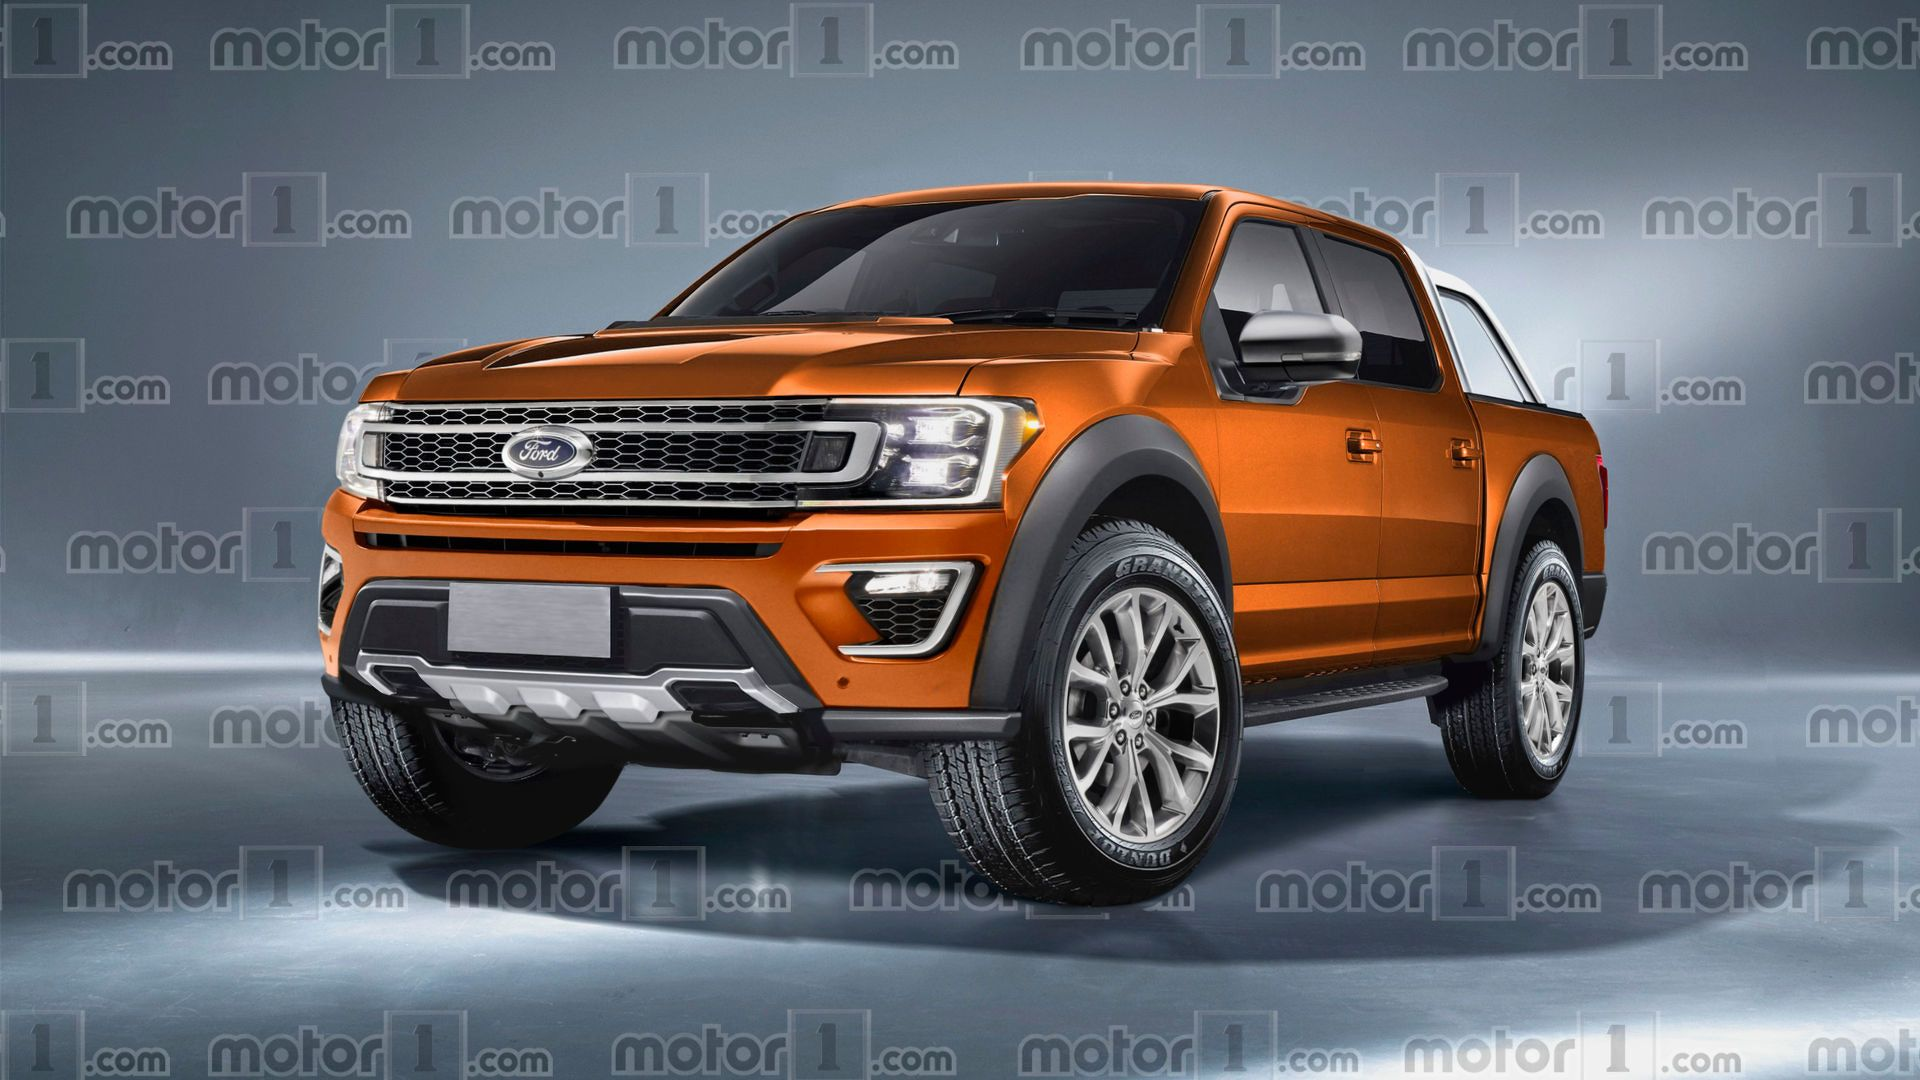 2019 ford ranger imagined as f 150 s little brother ford cars car